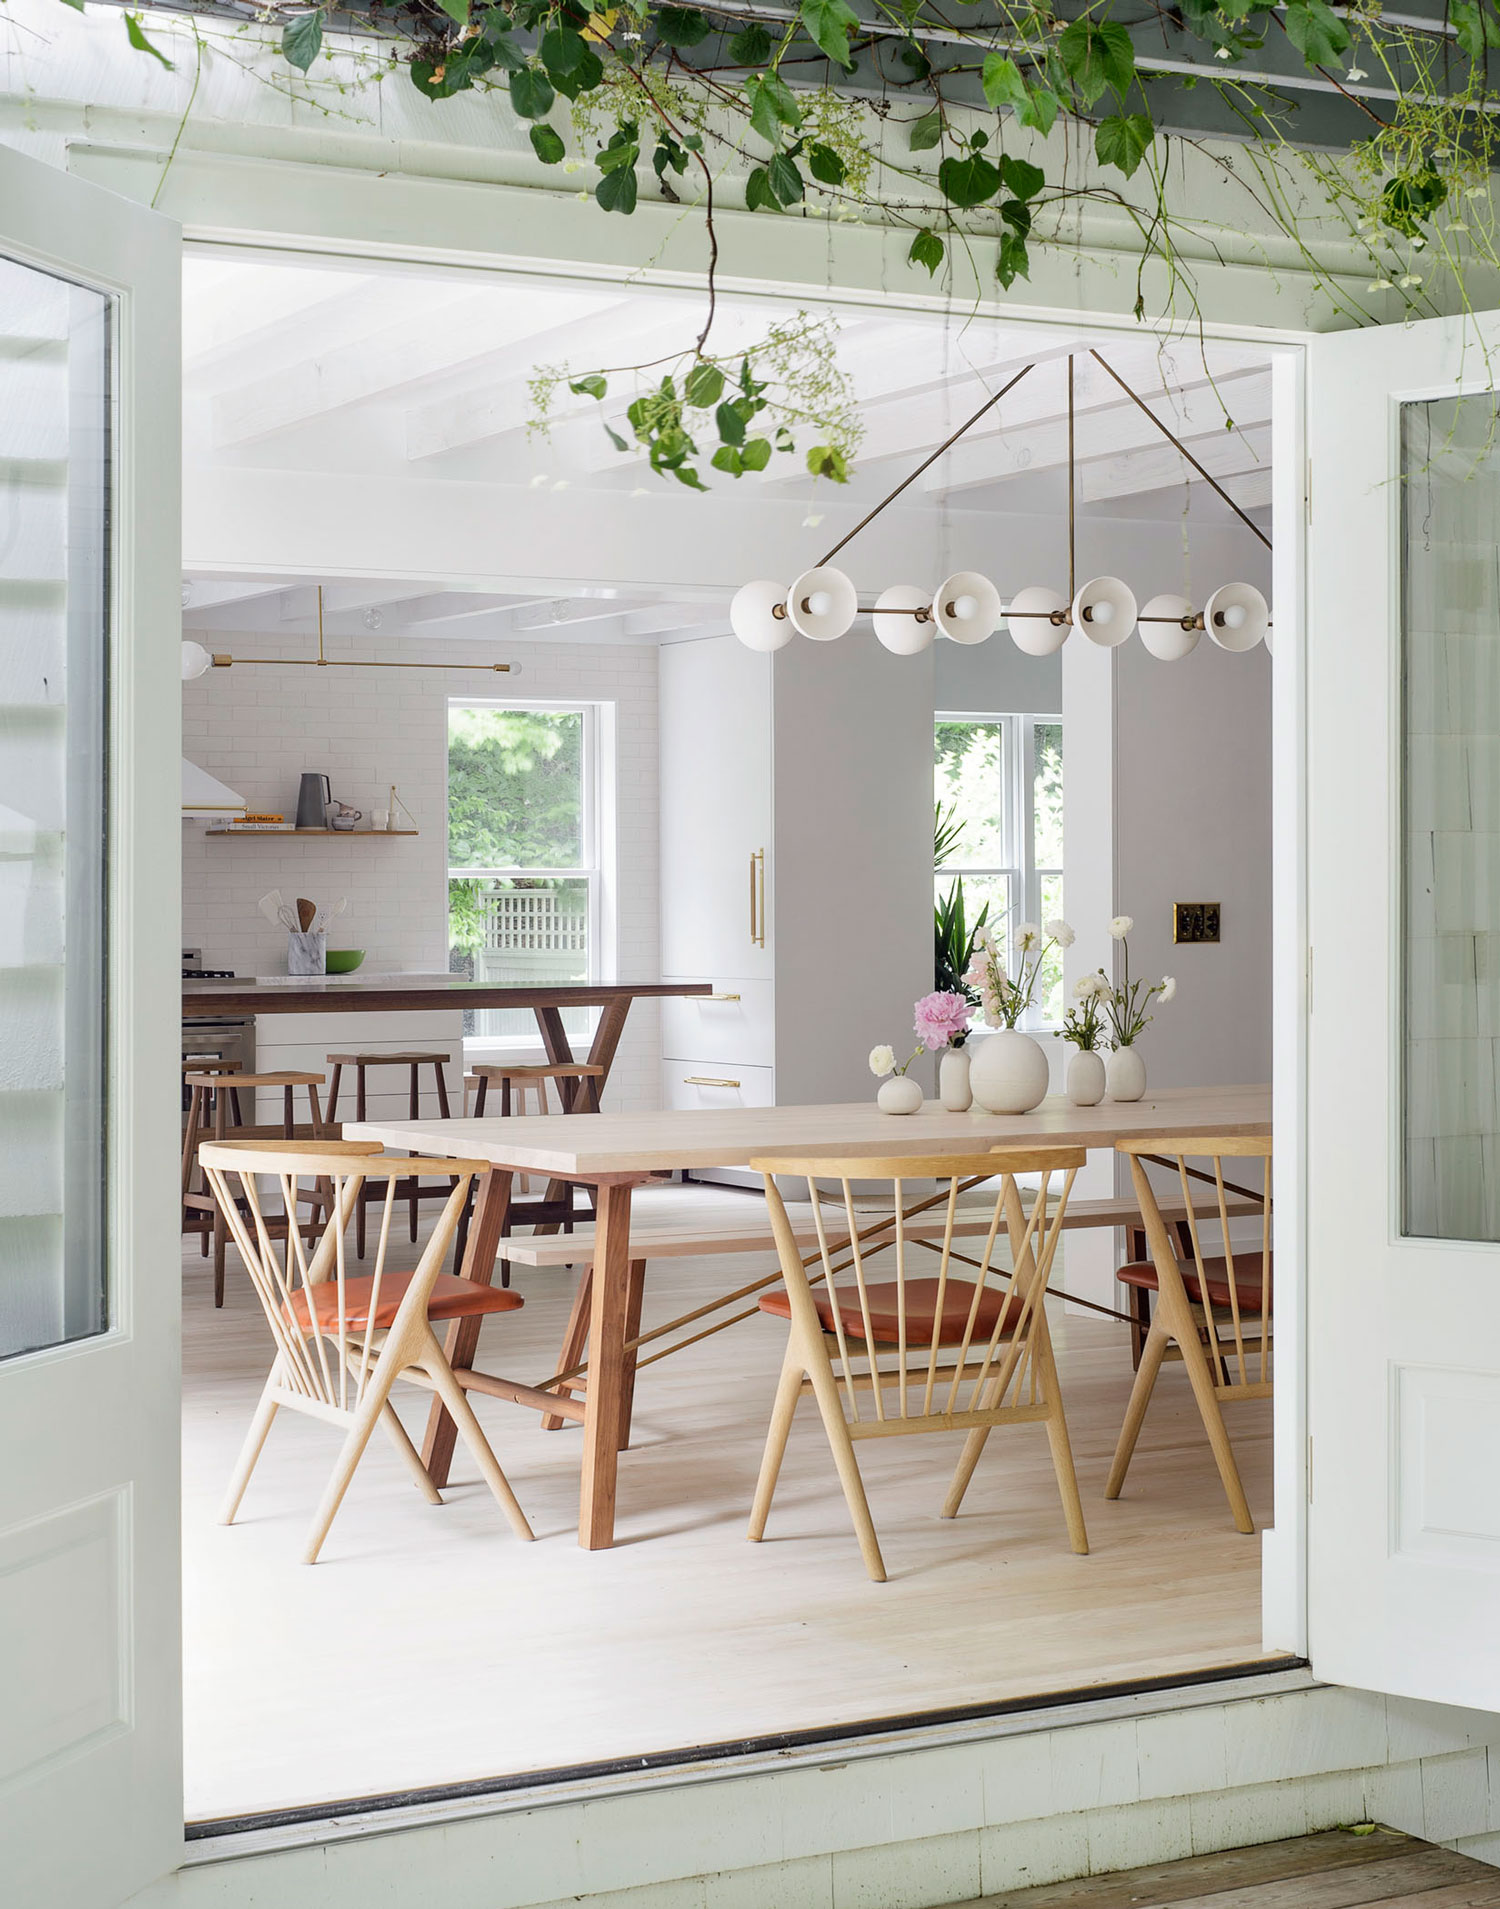 Amagansett-House-by-Jessica-Helgerson-Interior-Design-Yellowtrace-04.jpg